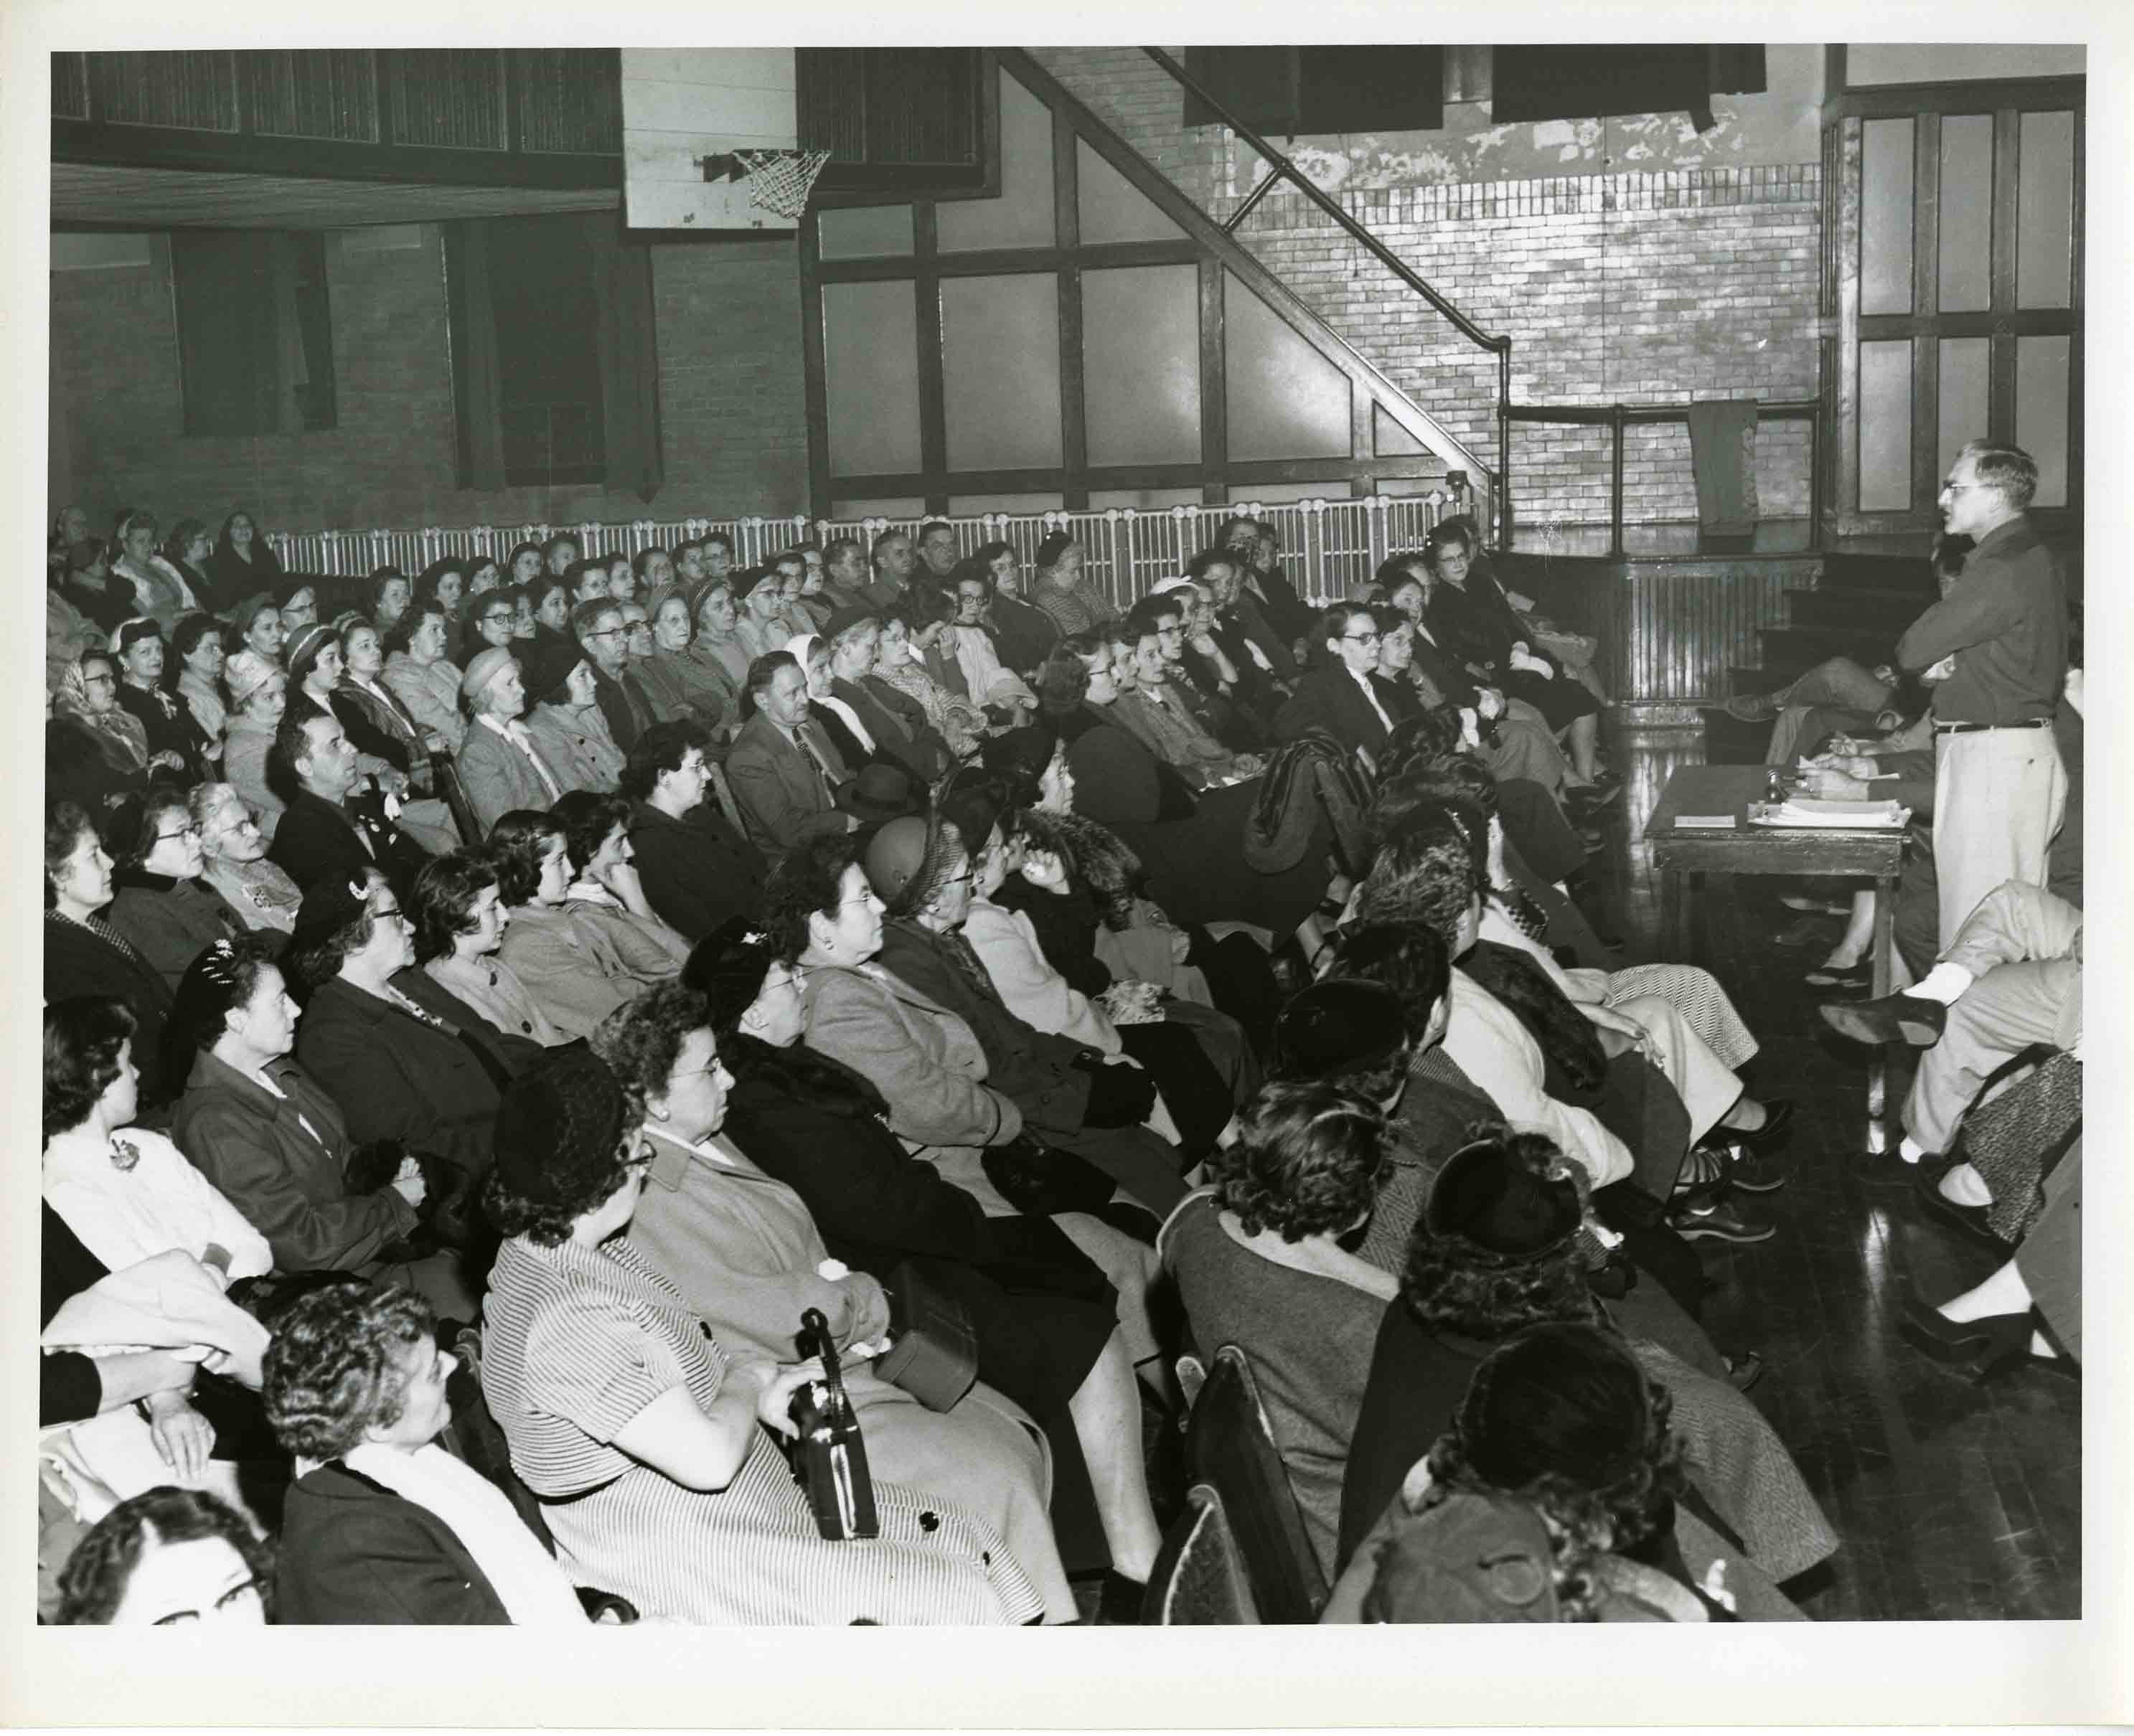 Union meeting of the Hansen & Whitney Local 295, date unknown, from the James A. Ingalls Papers